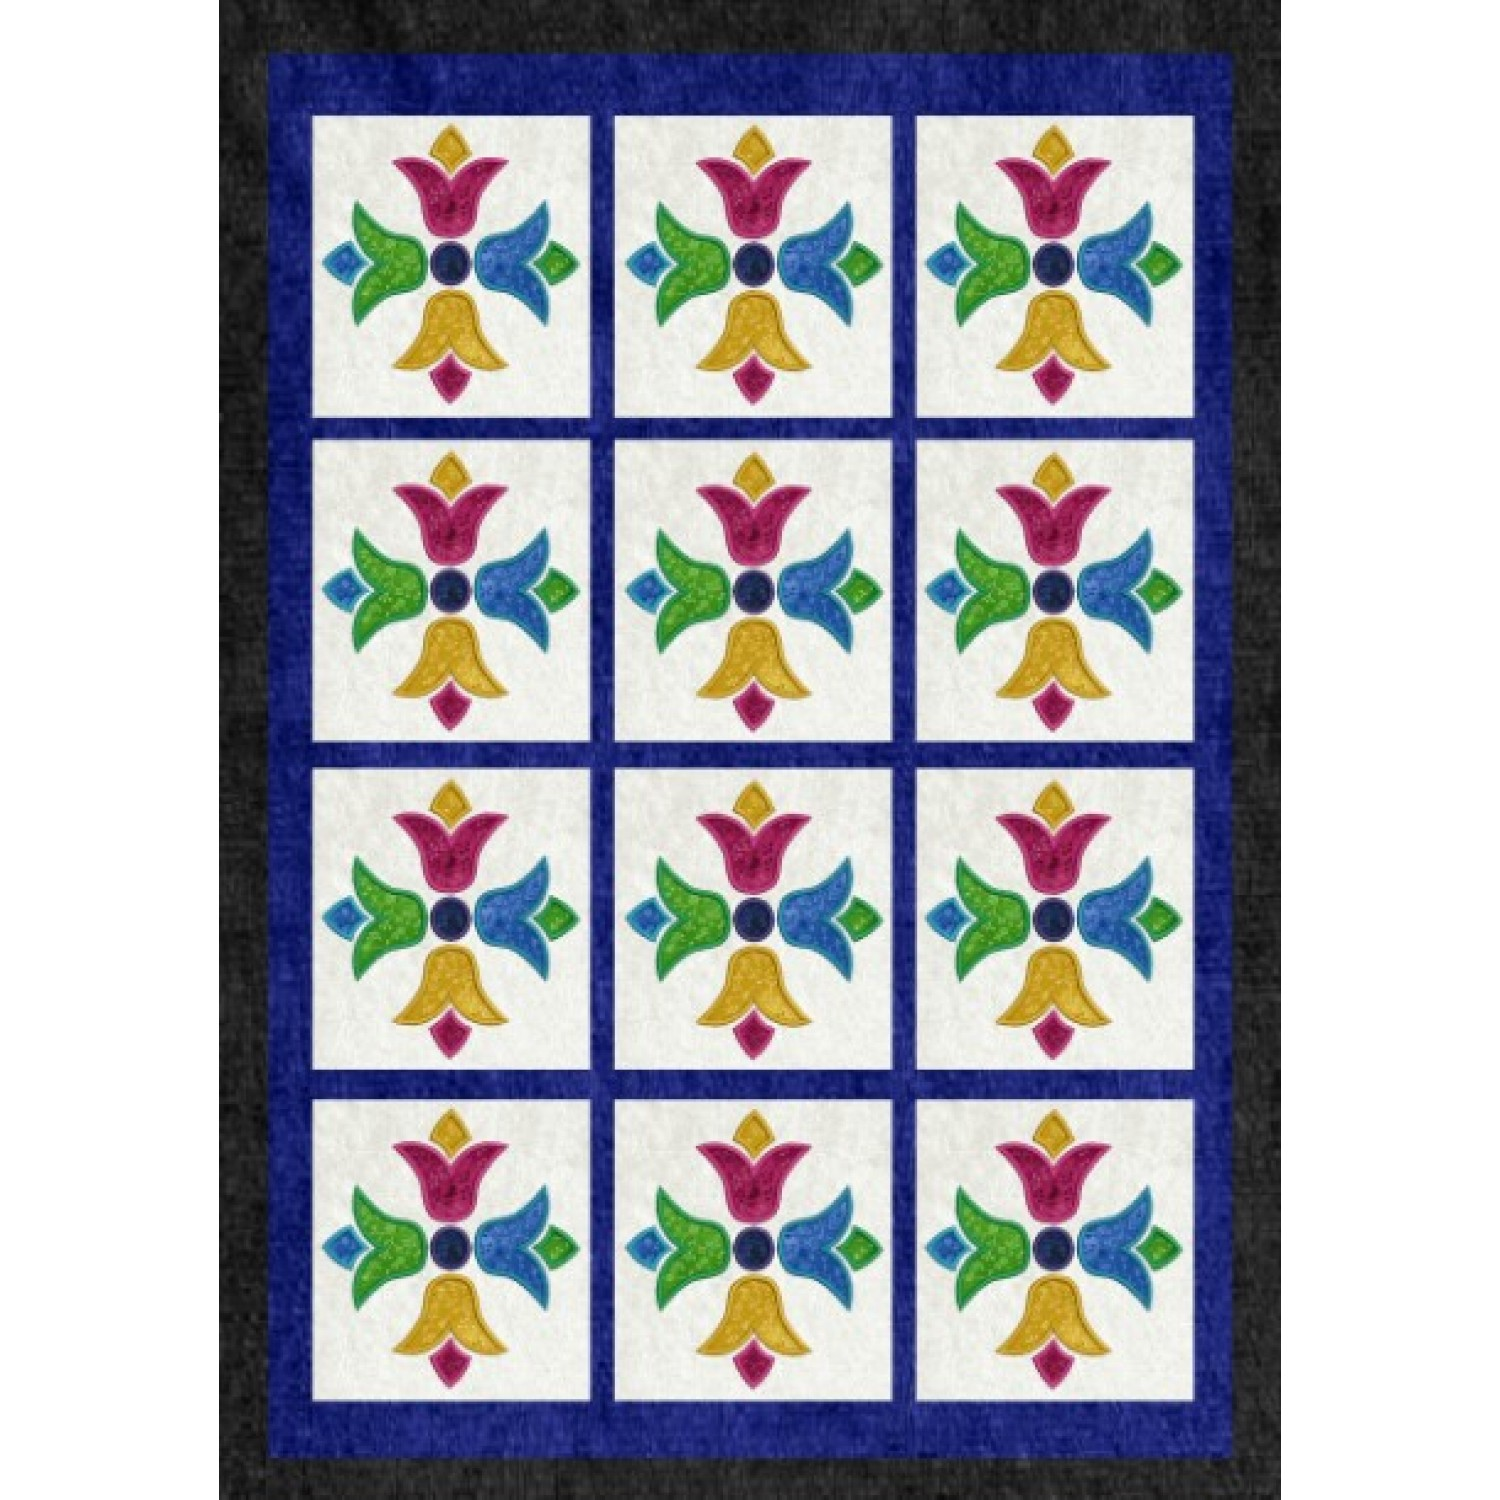 Moroccan Tiles v3 applique